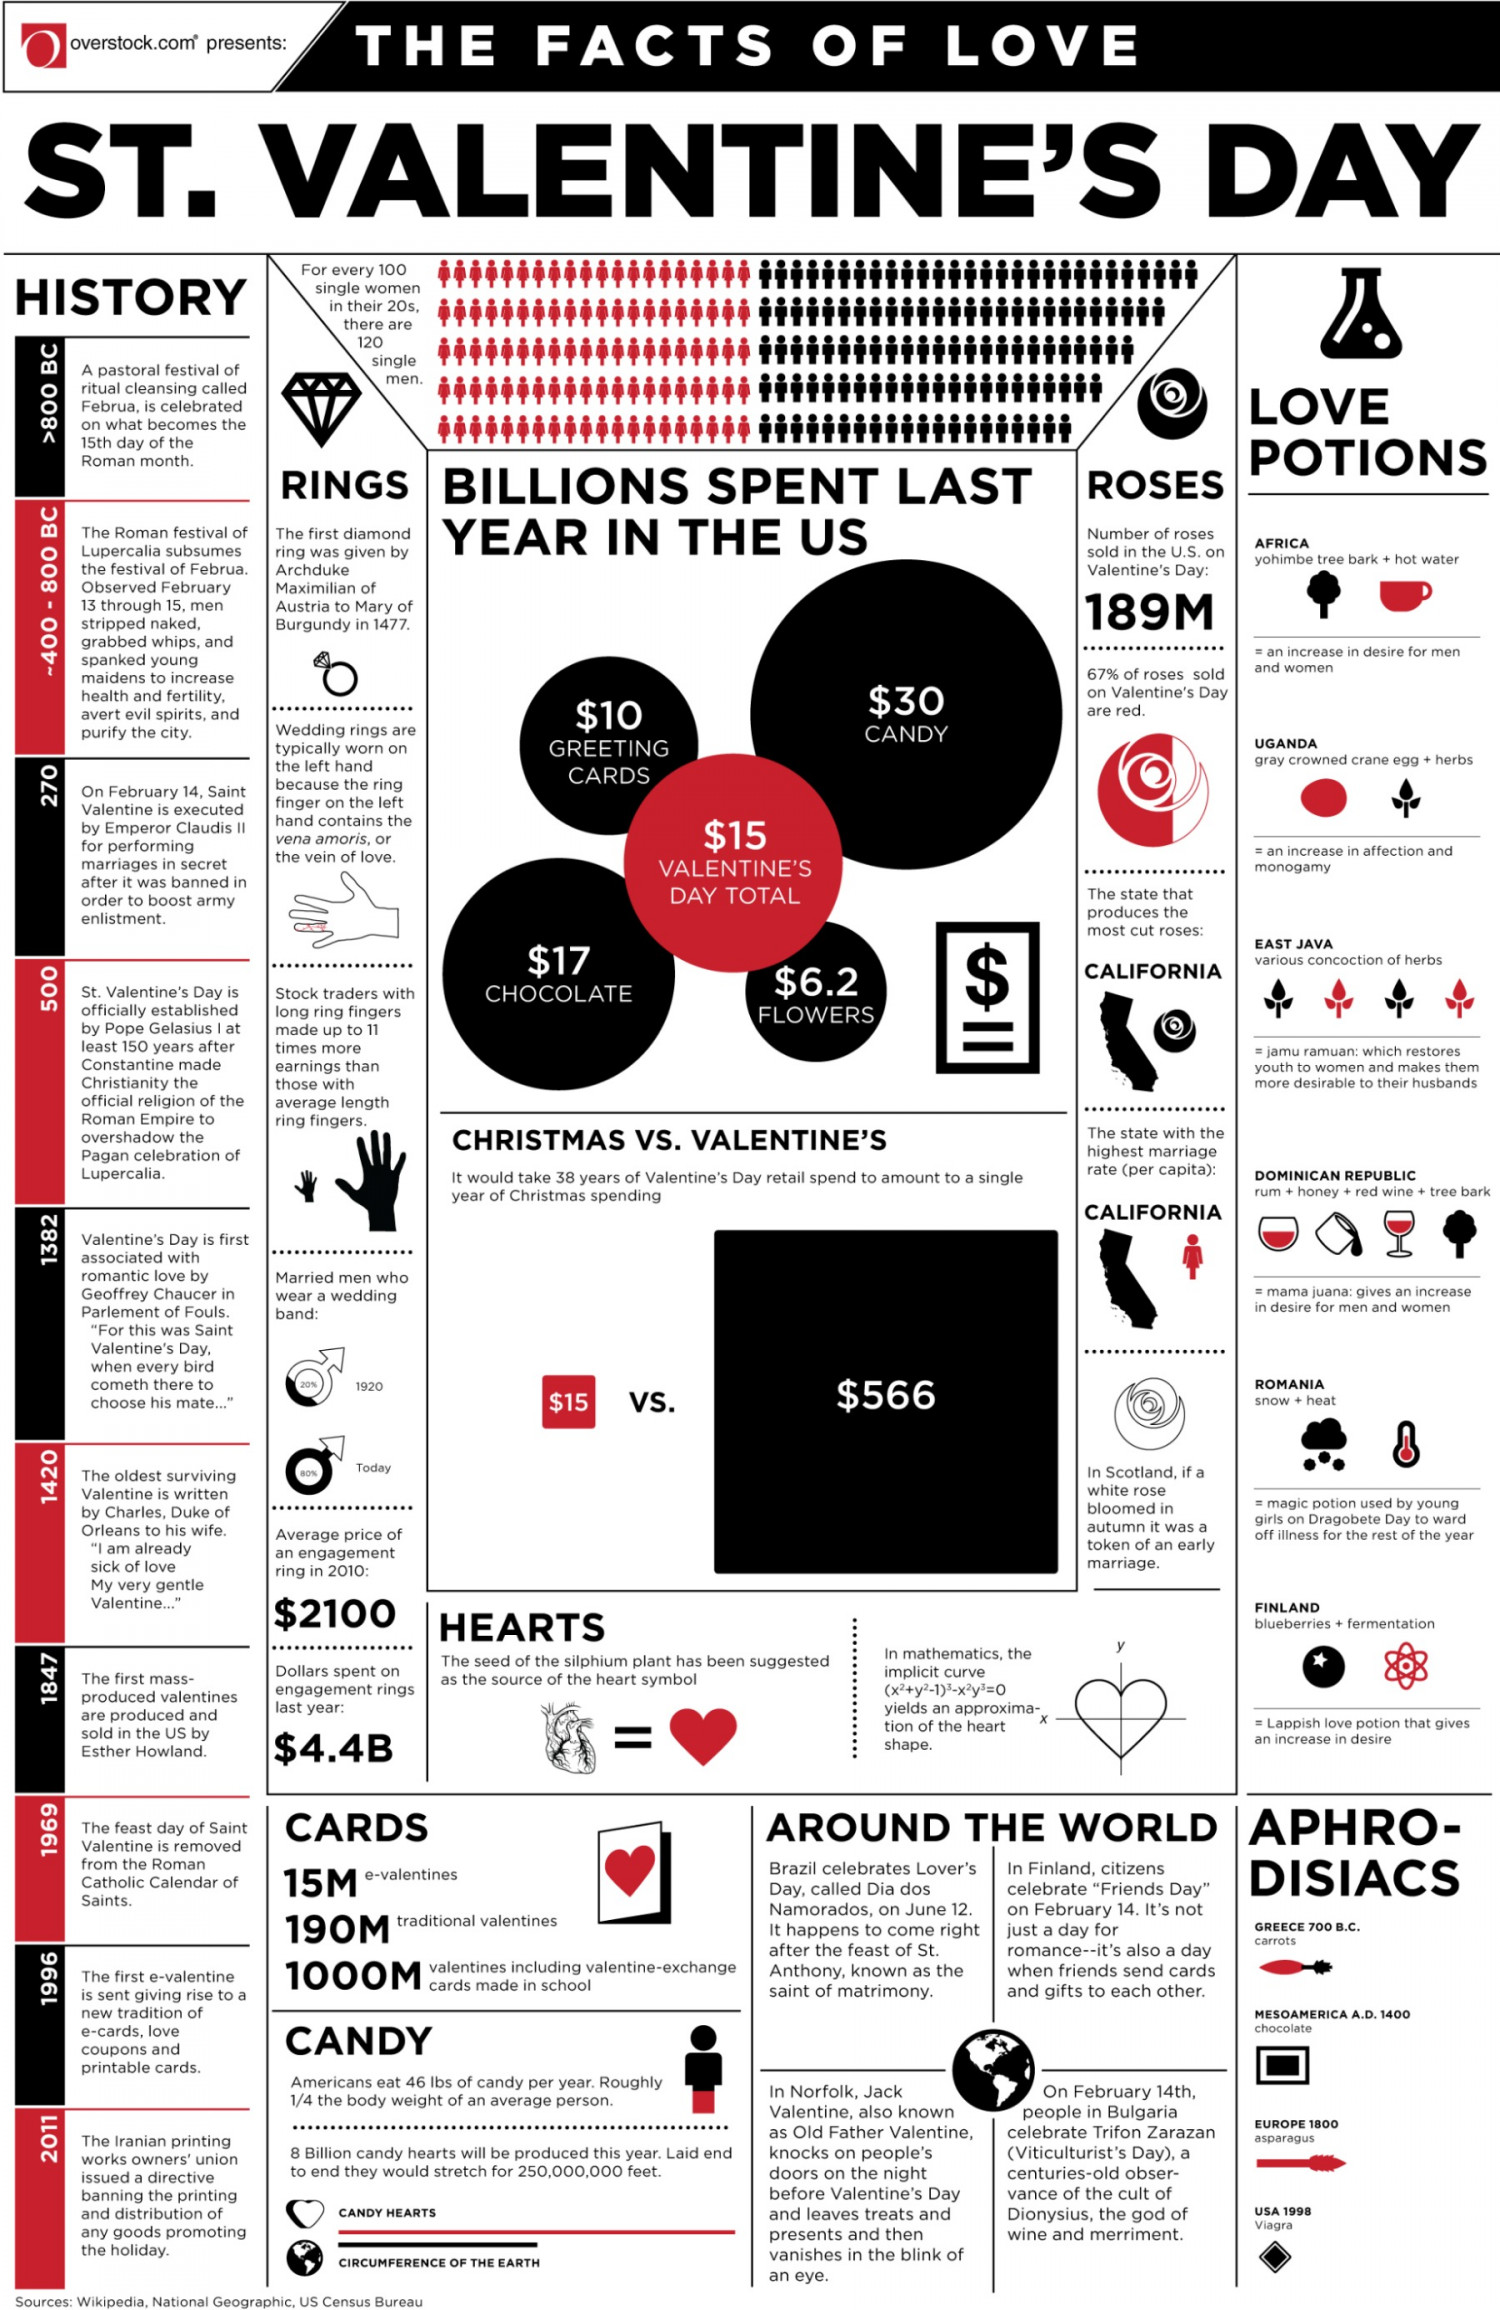 The Facts of Love Infographic